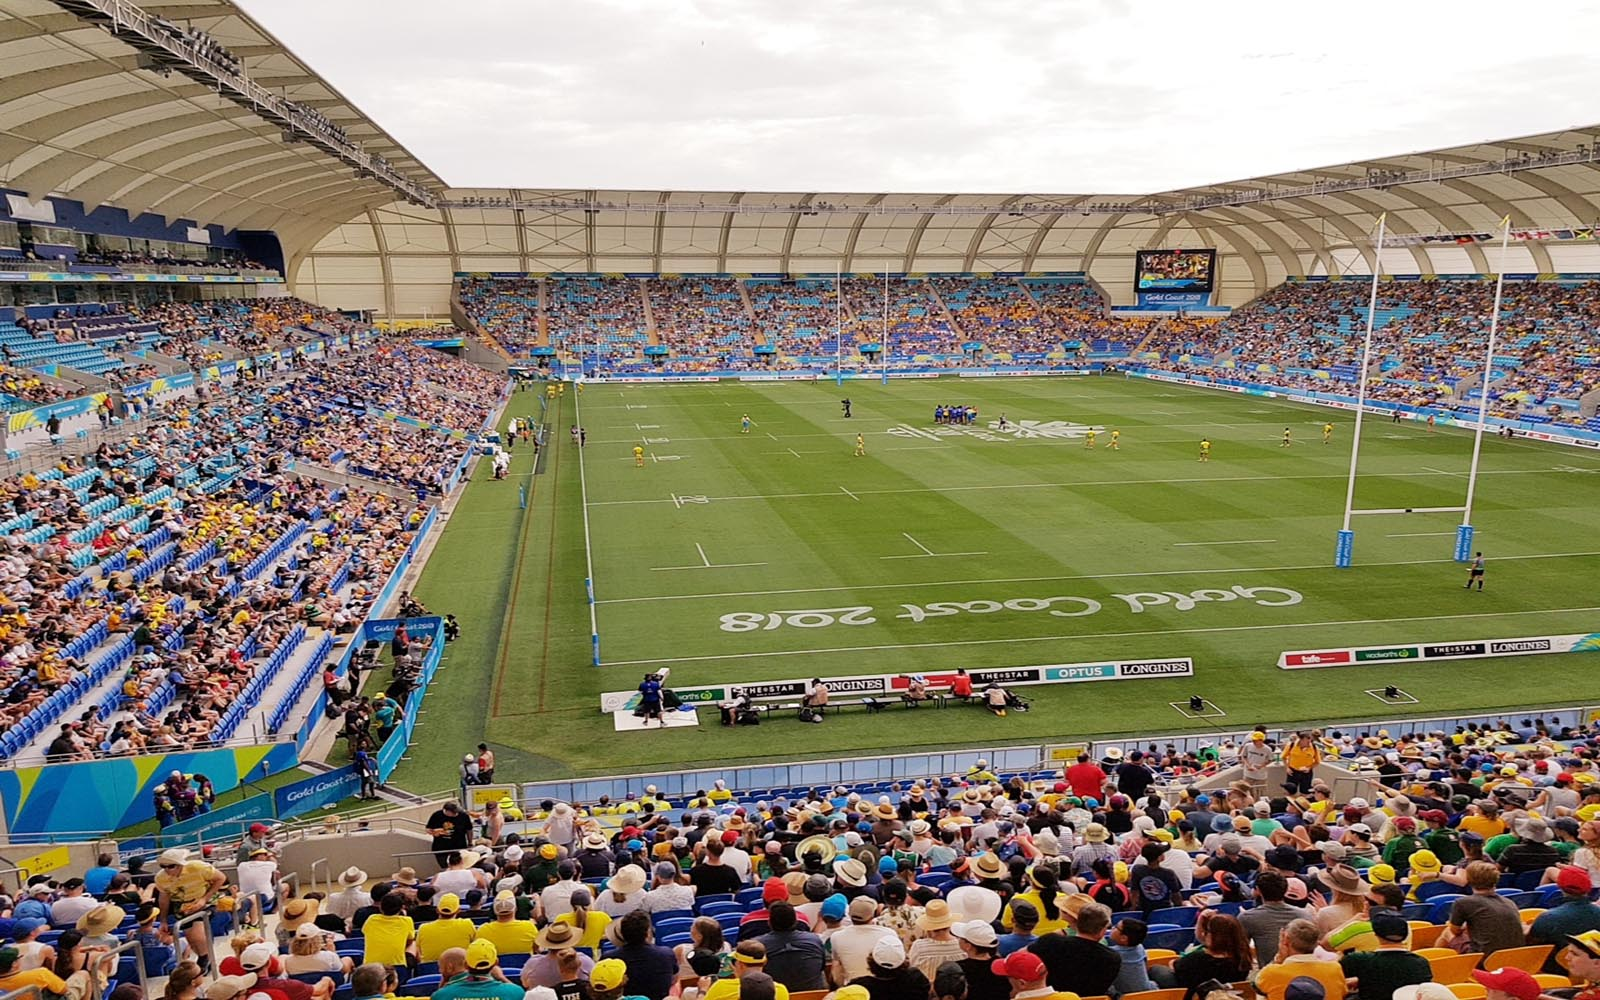 Packed crowd in stadium for 2018 Commonwealth Games